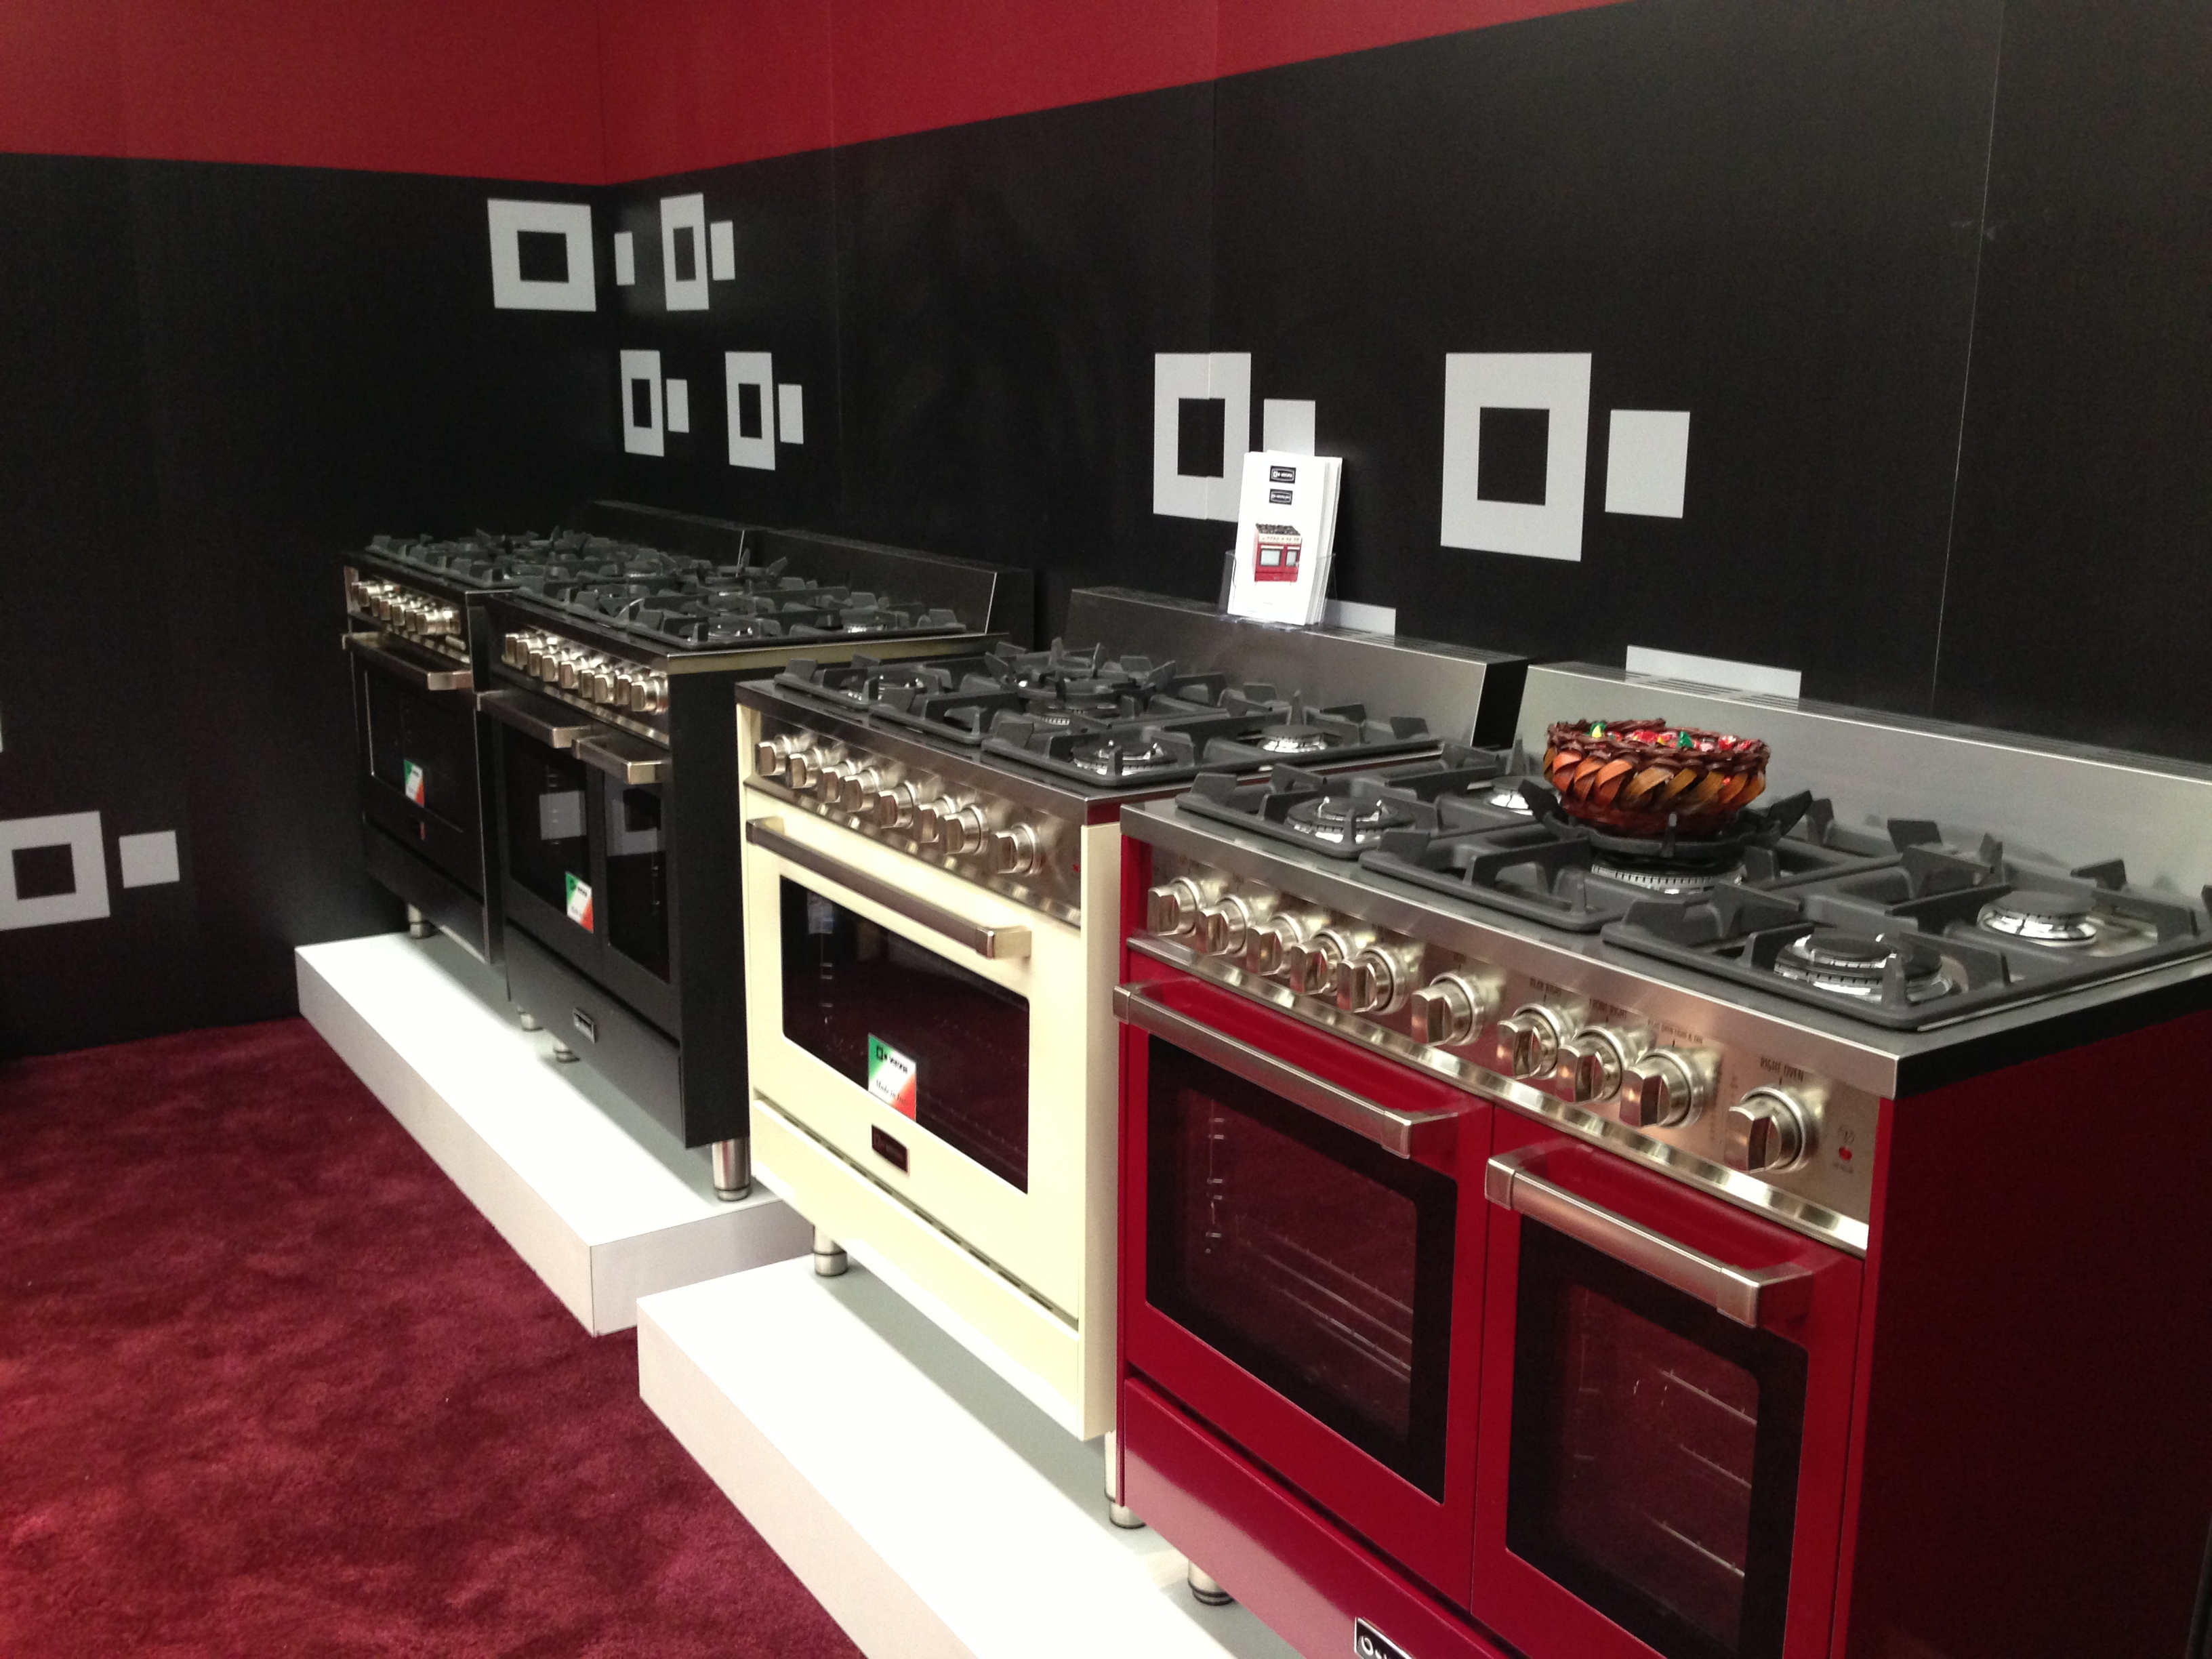 Ranges, Cooktops, Wall Ovens, a special Verona blog post is coming soon.